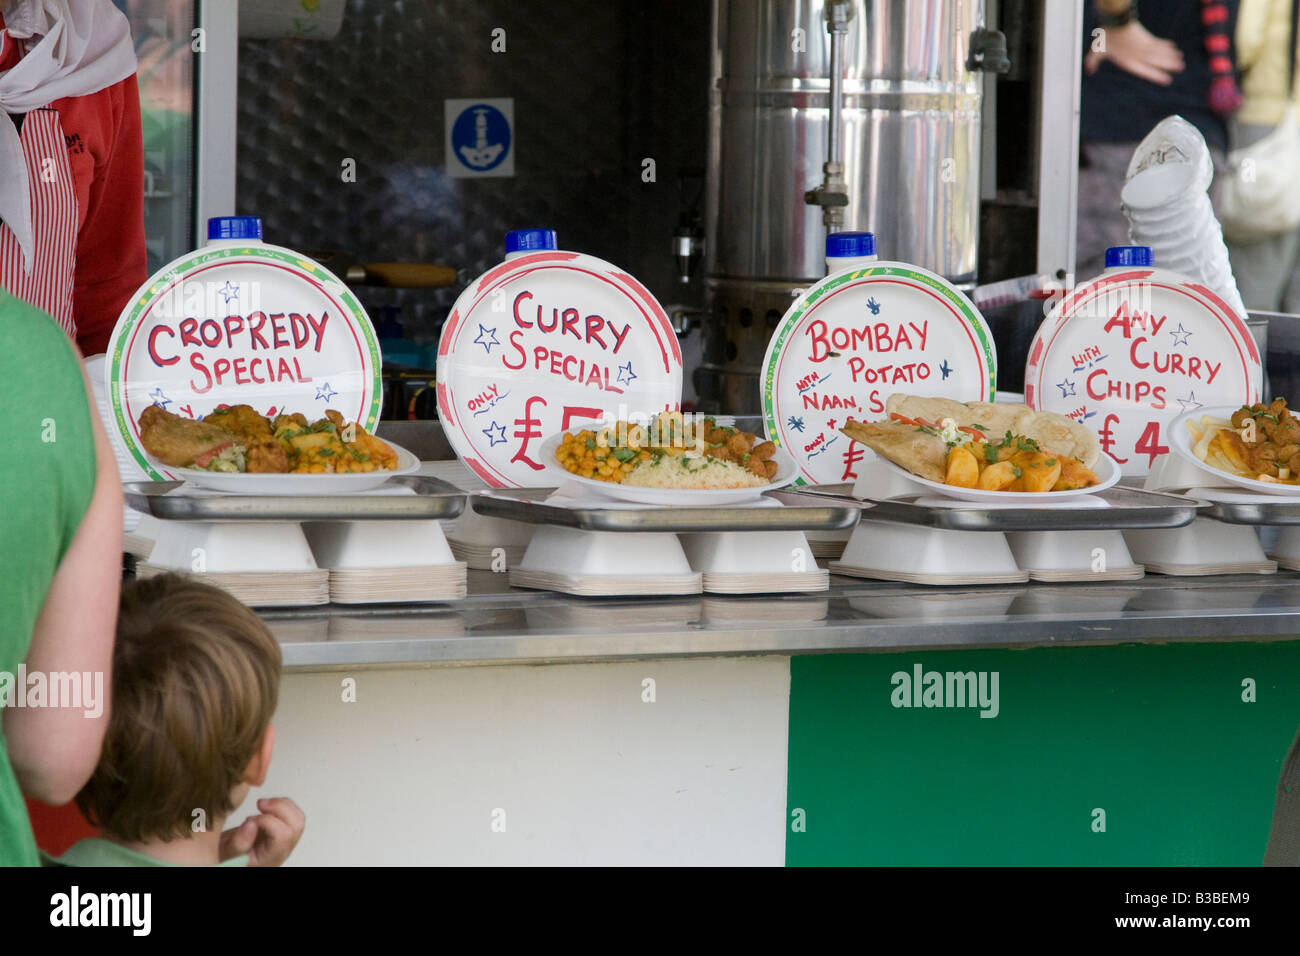 Indian food for sale at Fairport s Cropredy Convention music festival 2008 near Banbury England UK - Stock Image